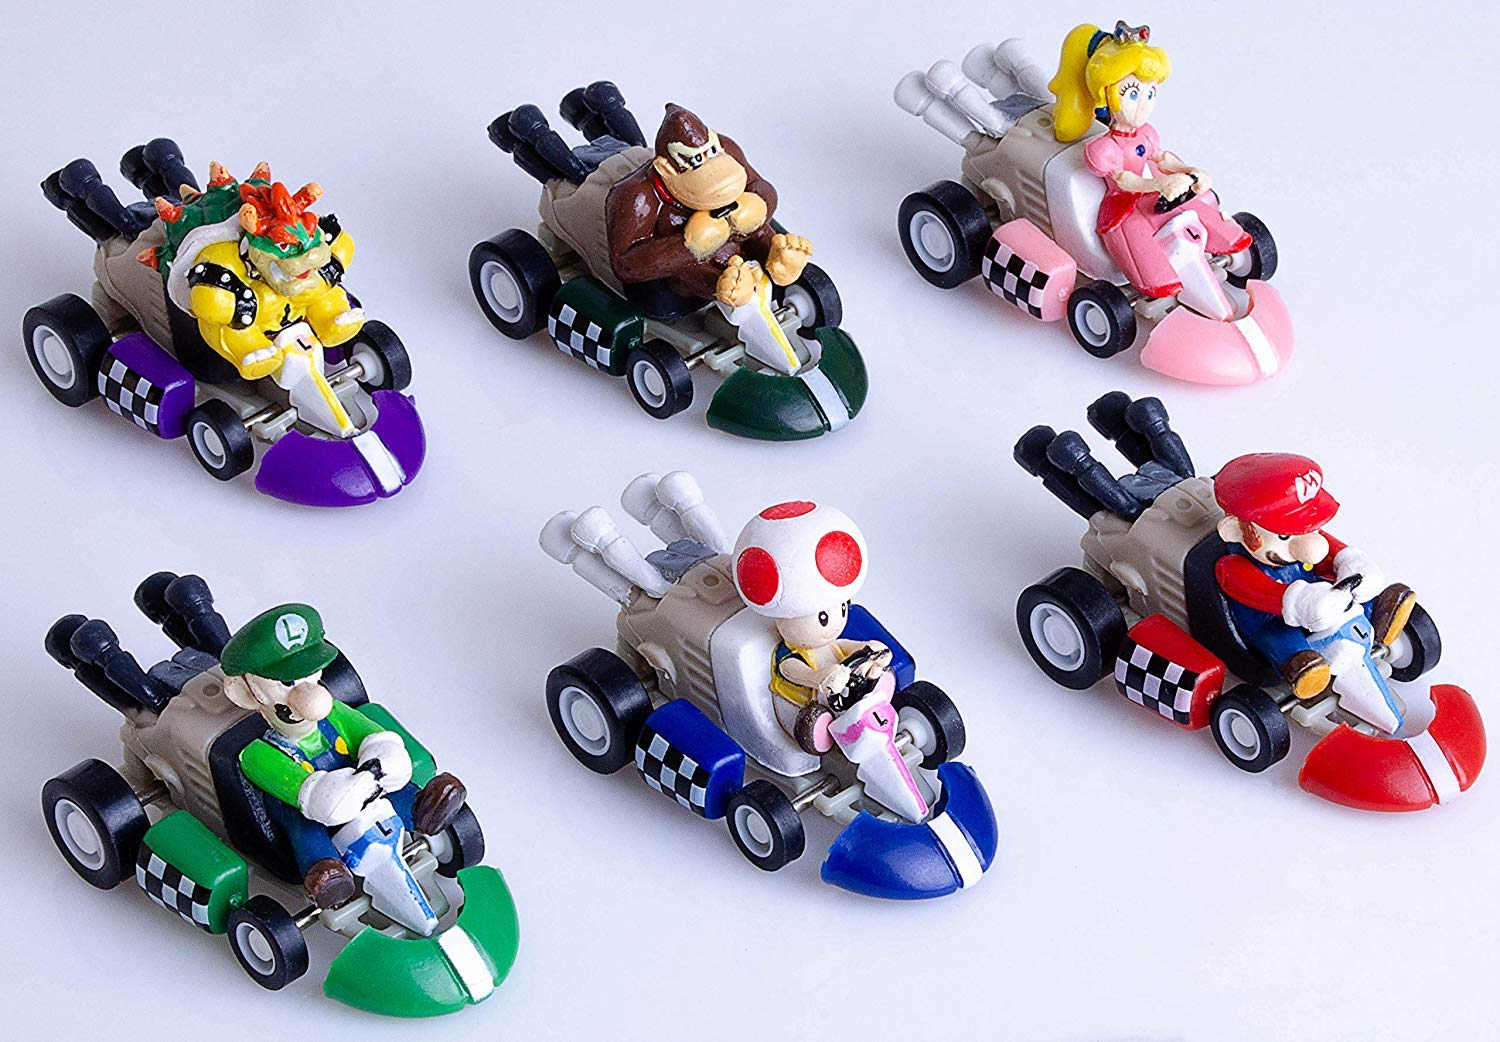 6 Pcs Mario Kart Pull Back Cars Cake Topper Figures Toy Set -Kids Birthday Party Cake Decoration Supplies by IAMPOK